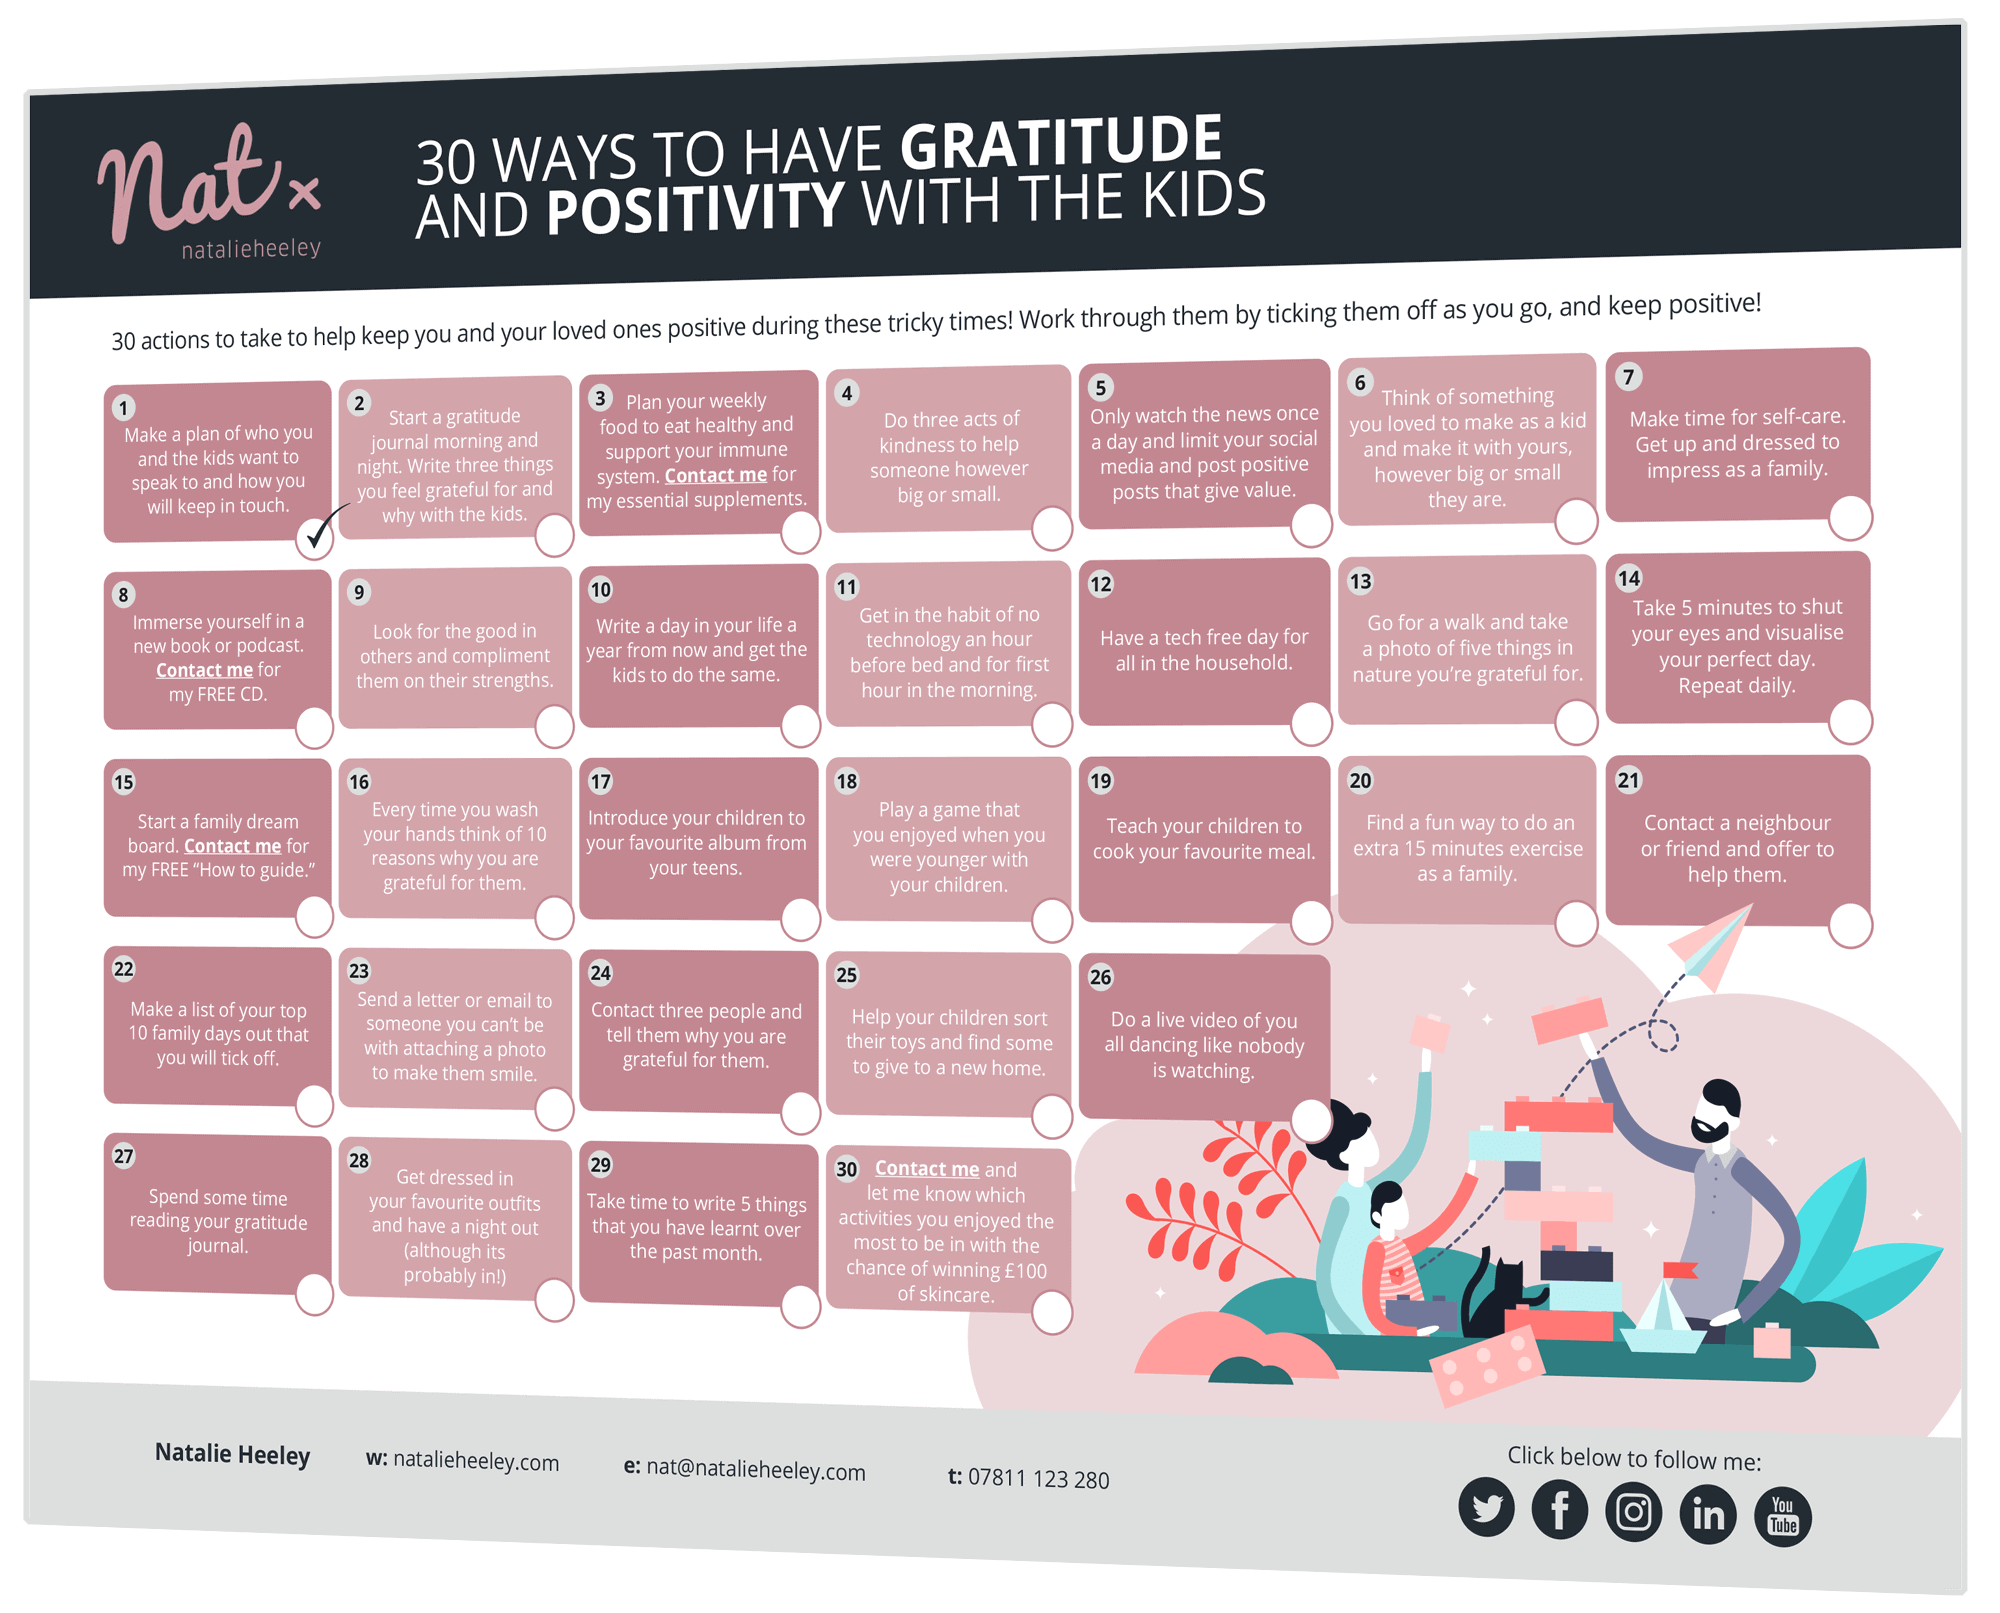 30 Ways To Have Gratitude and Positivity With The Kids